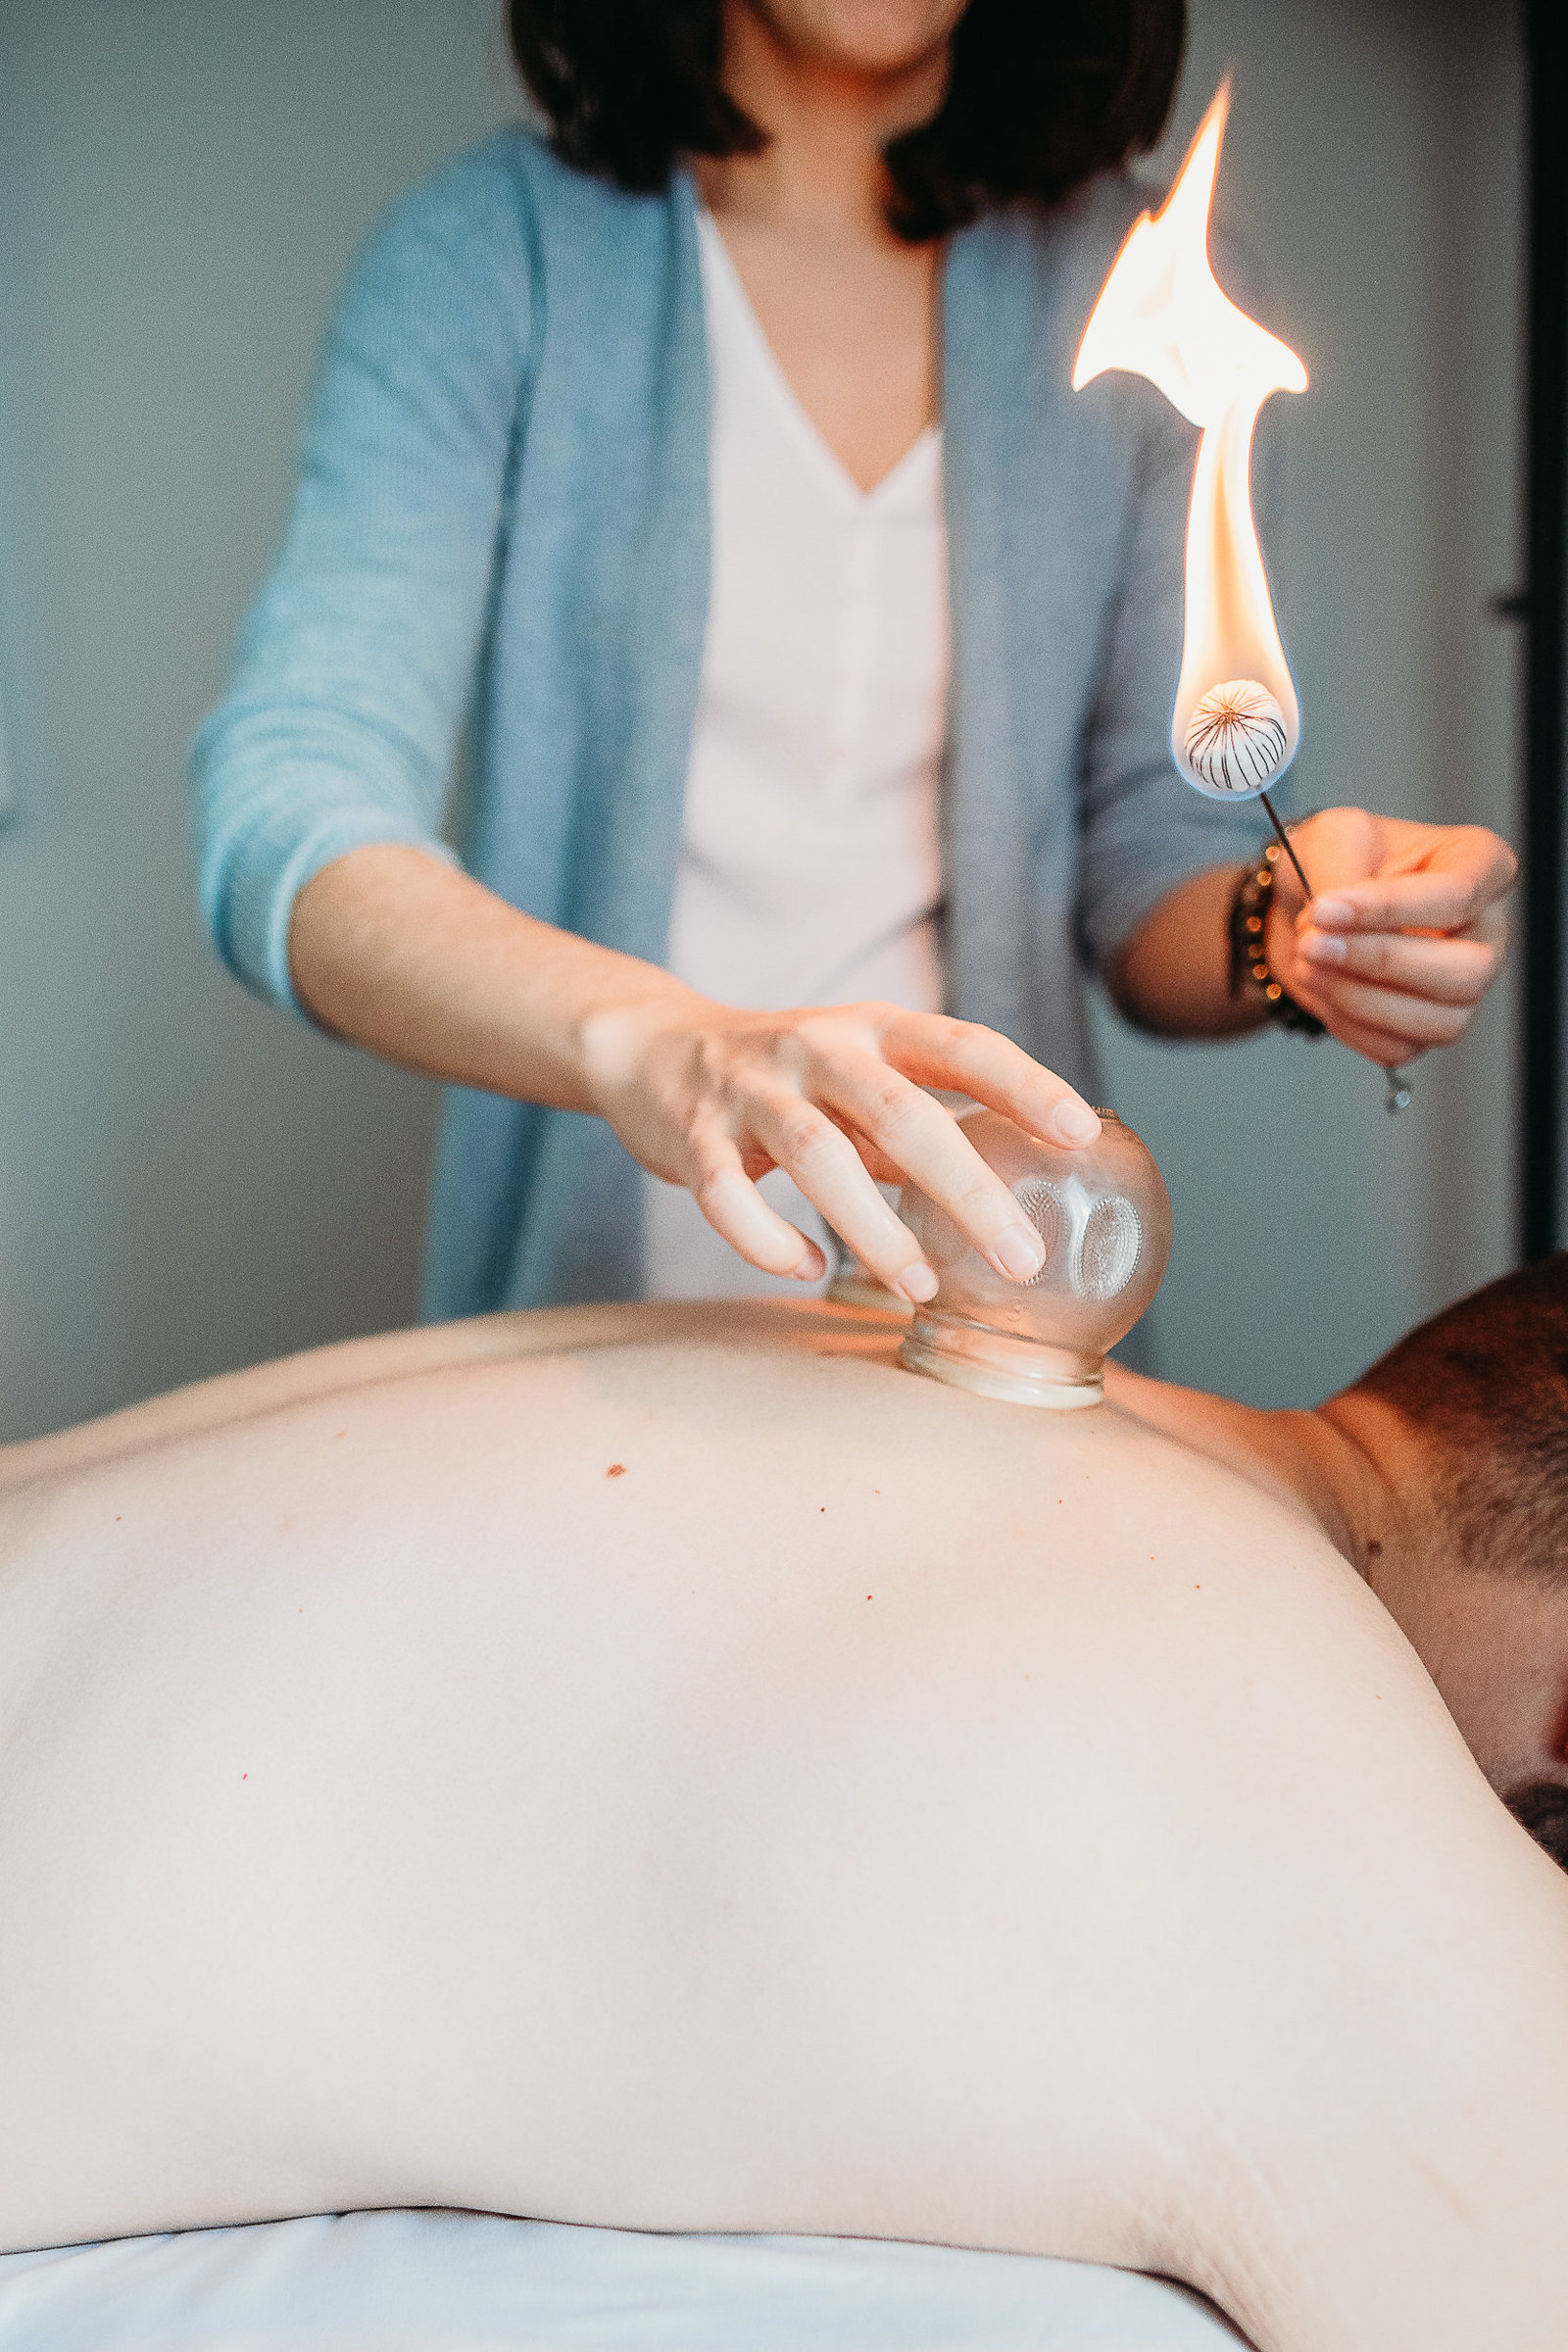 woman applies a cupping technique to a mans back during accupuncture branding images